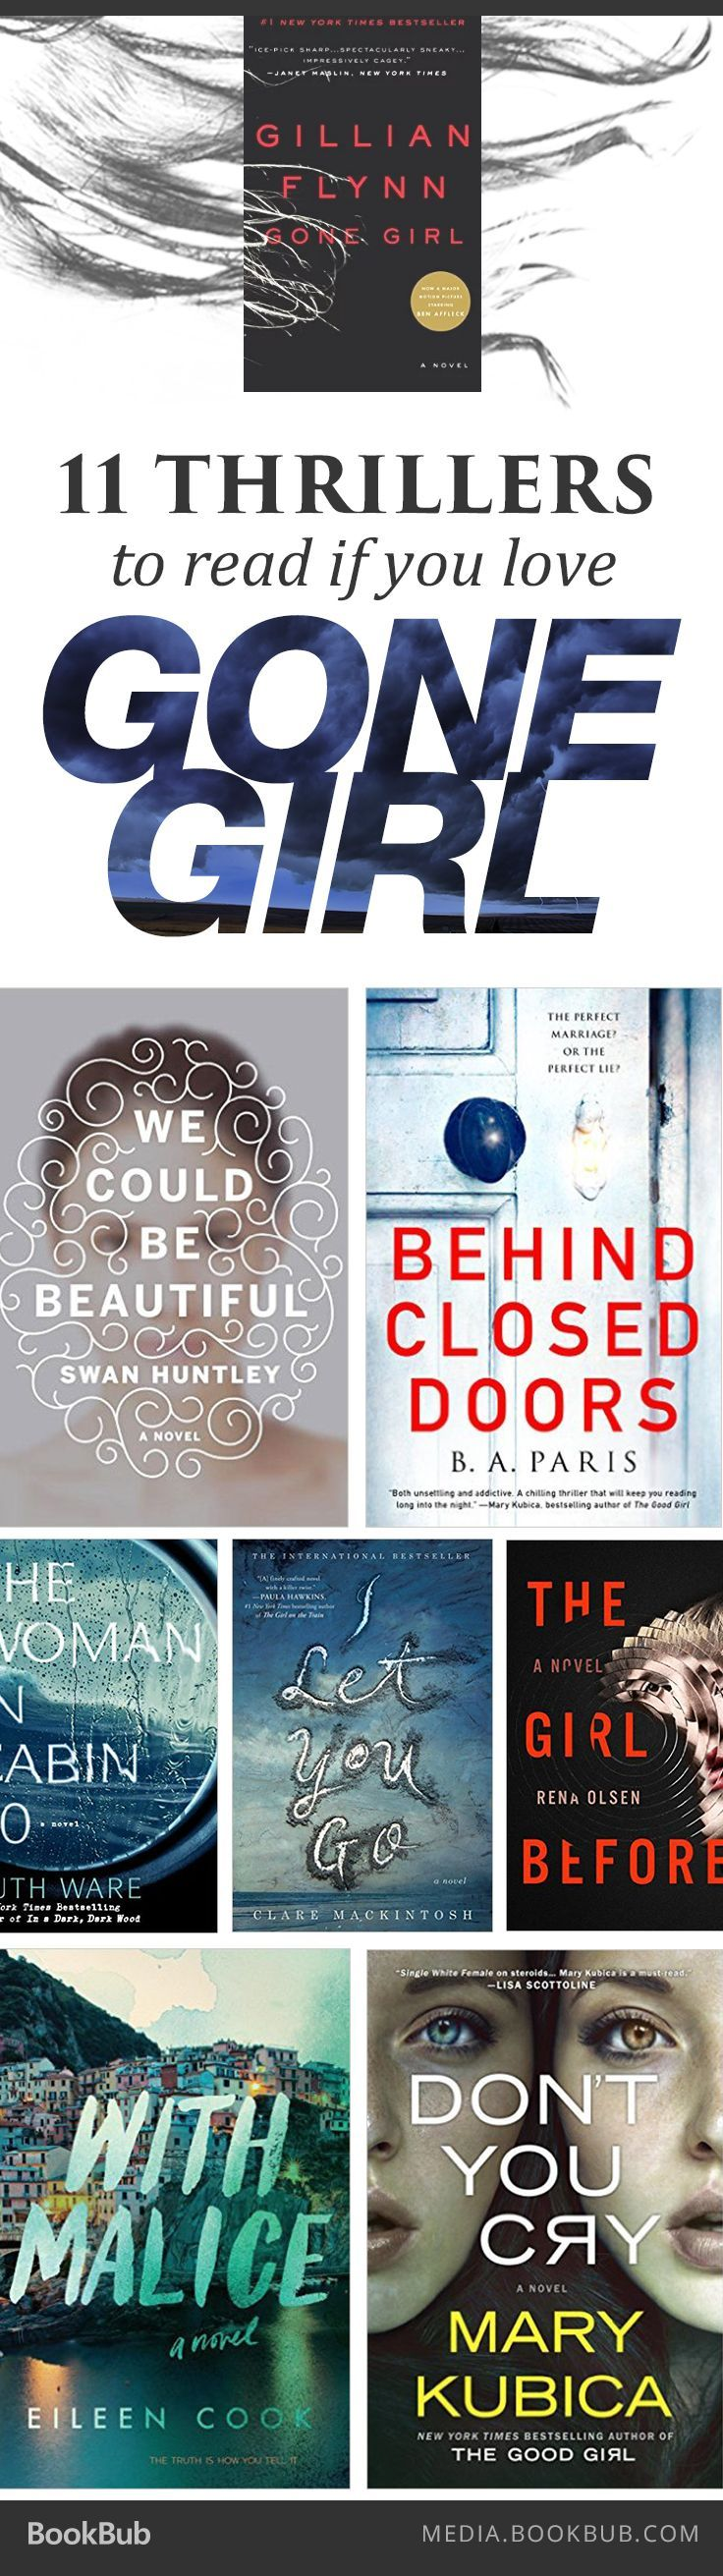 If you love thrillers, check out these 11 books that could be the next Gone Girl.